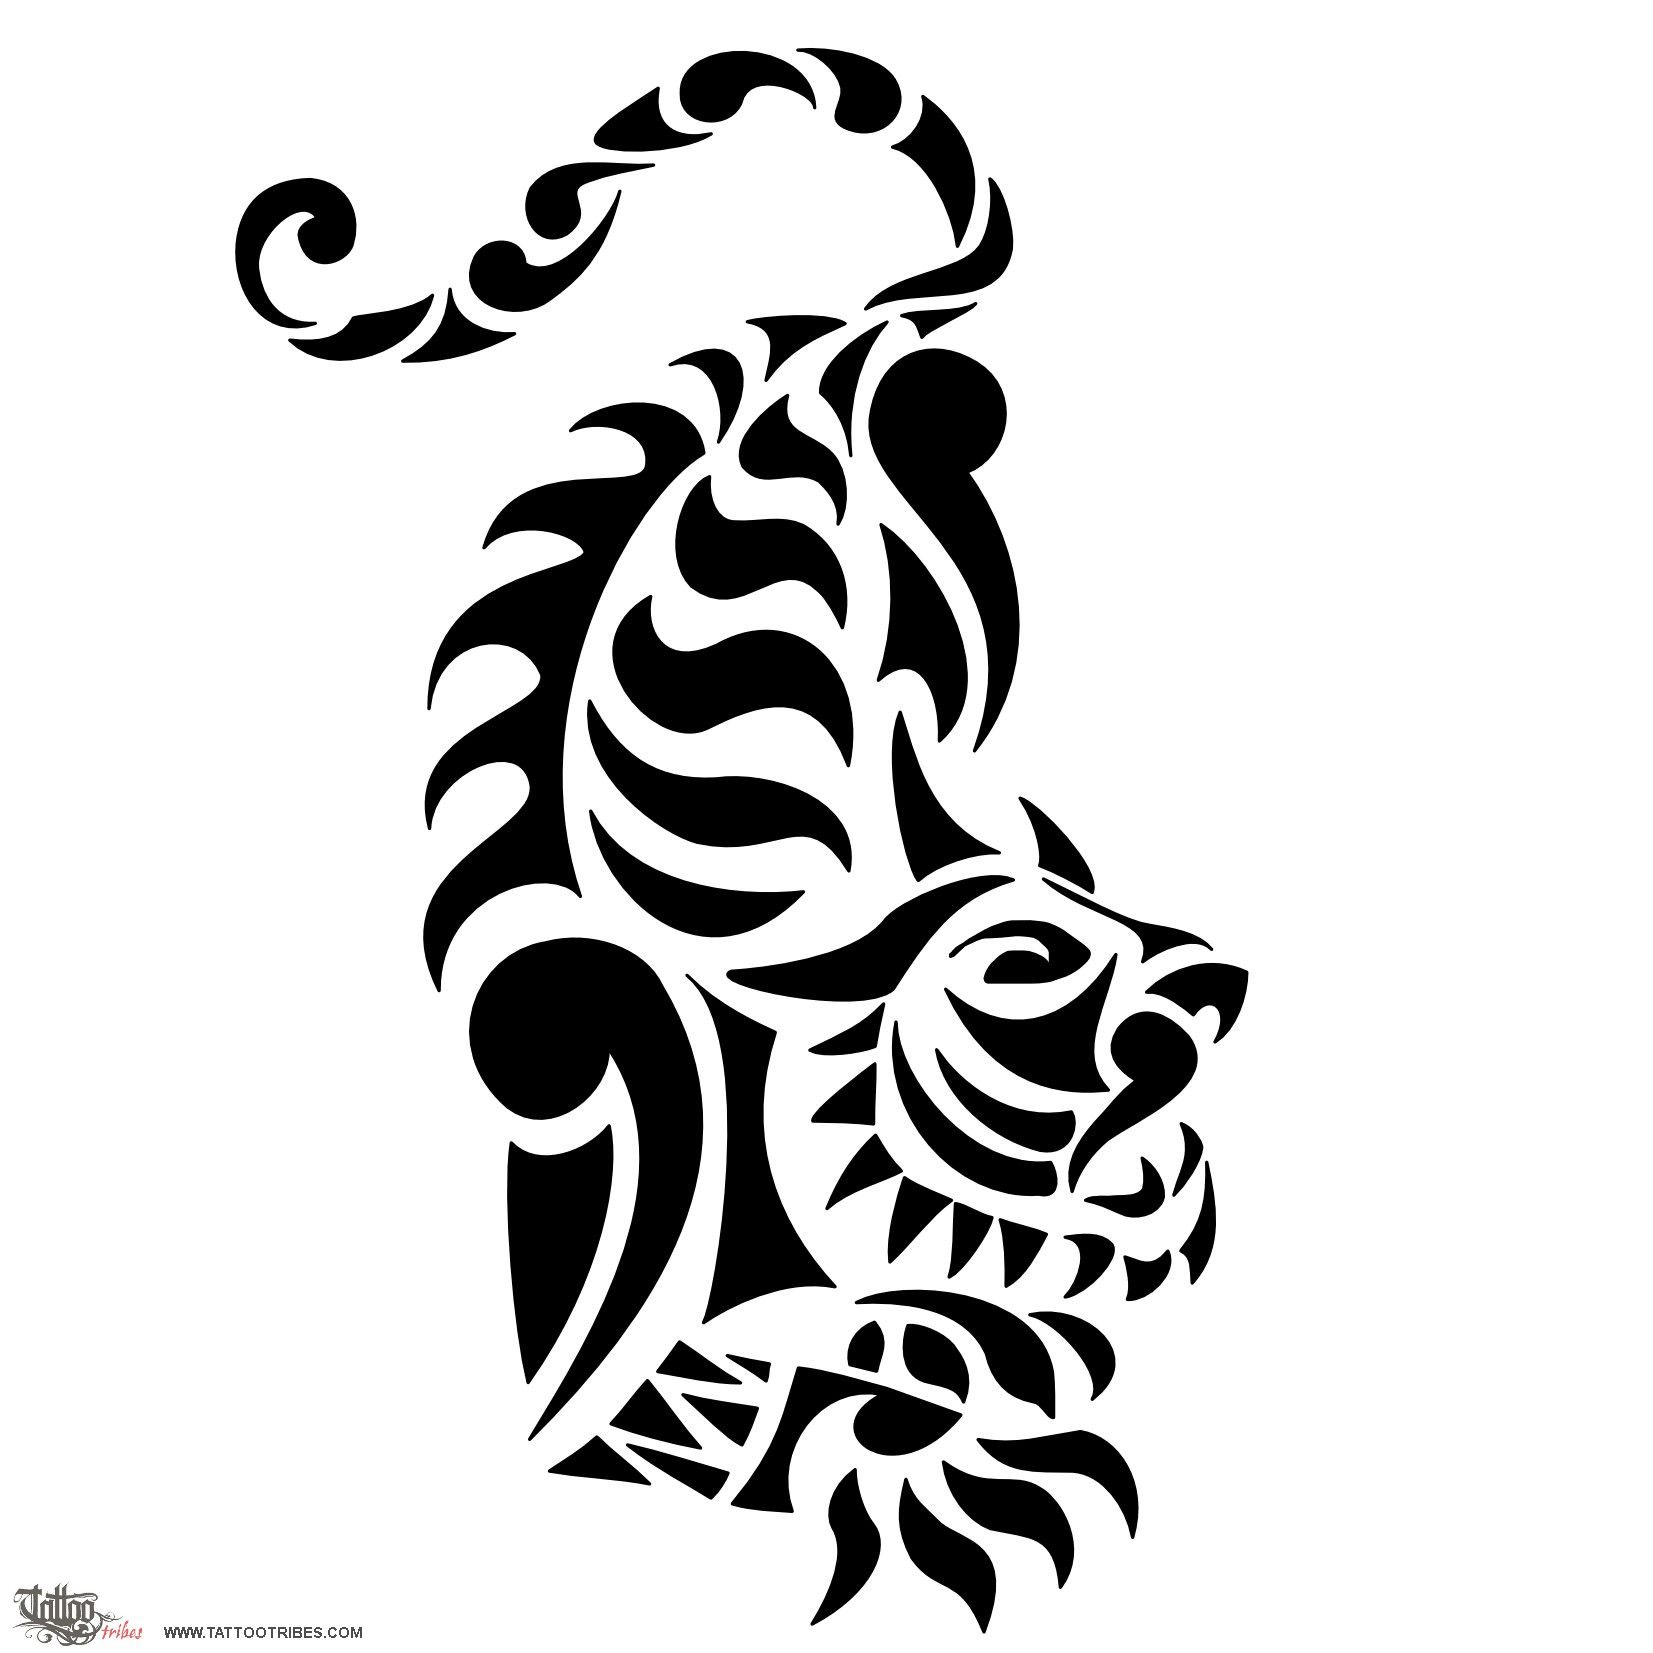 Tiger The Tiger Represents Strength And Beauty And Has Always Been